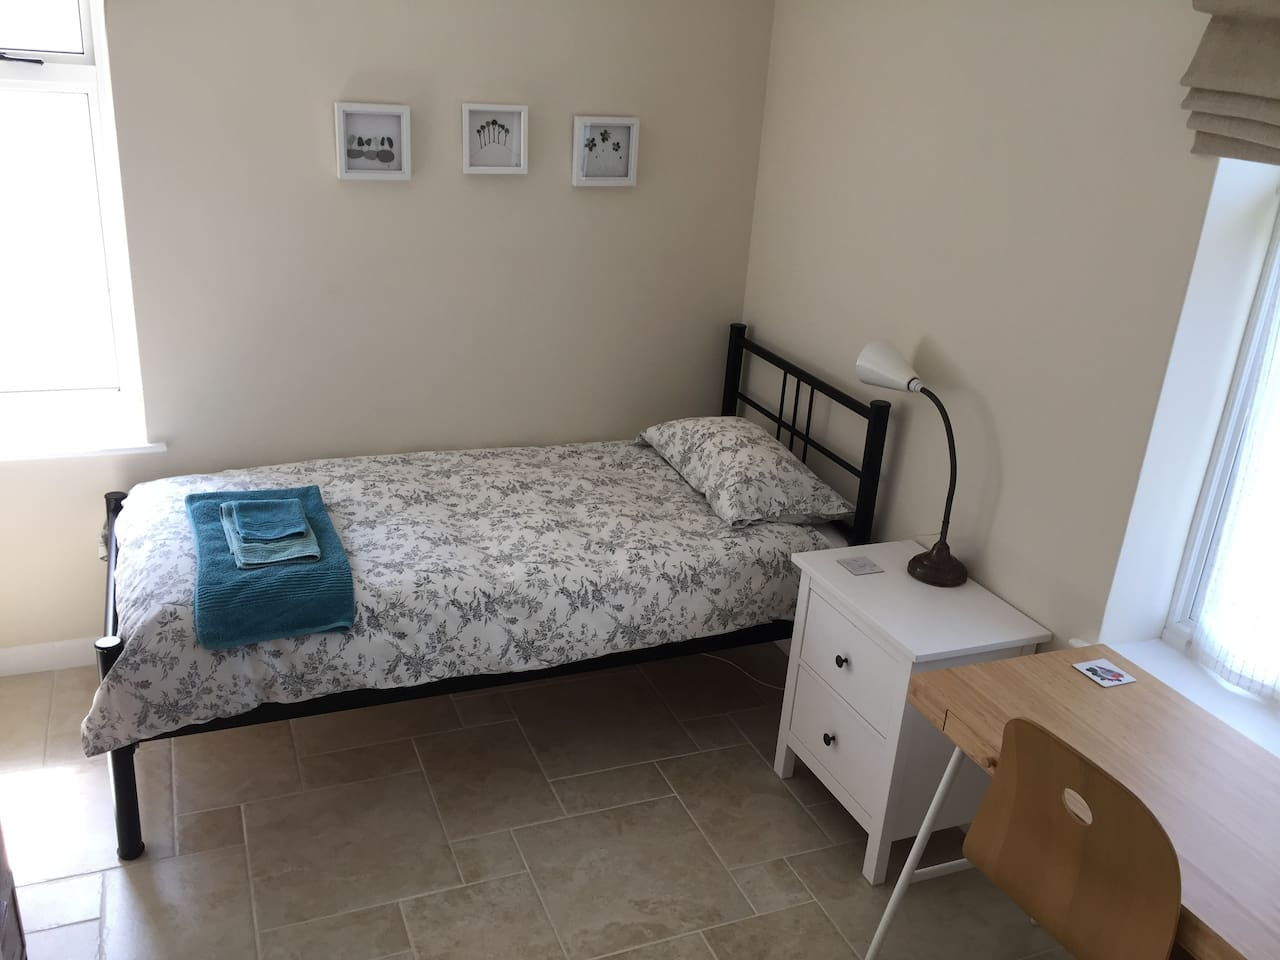 Spacious dual aspect light, modern and airy single room with comfortable bed, desk, wardrobe, drawers, full-length mirror and adjacent bathroom